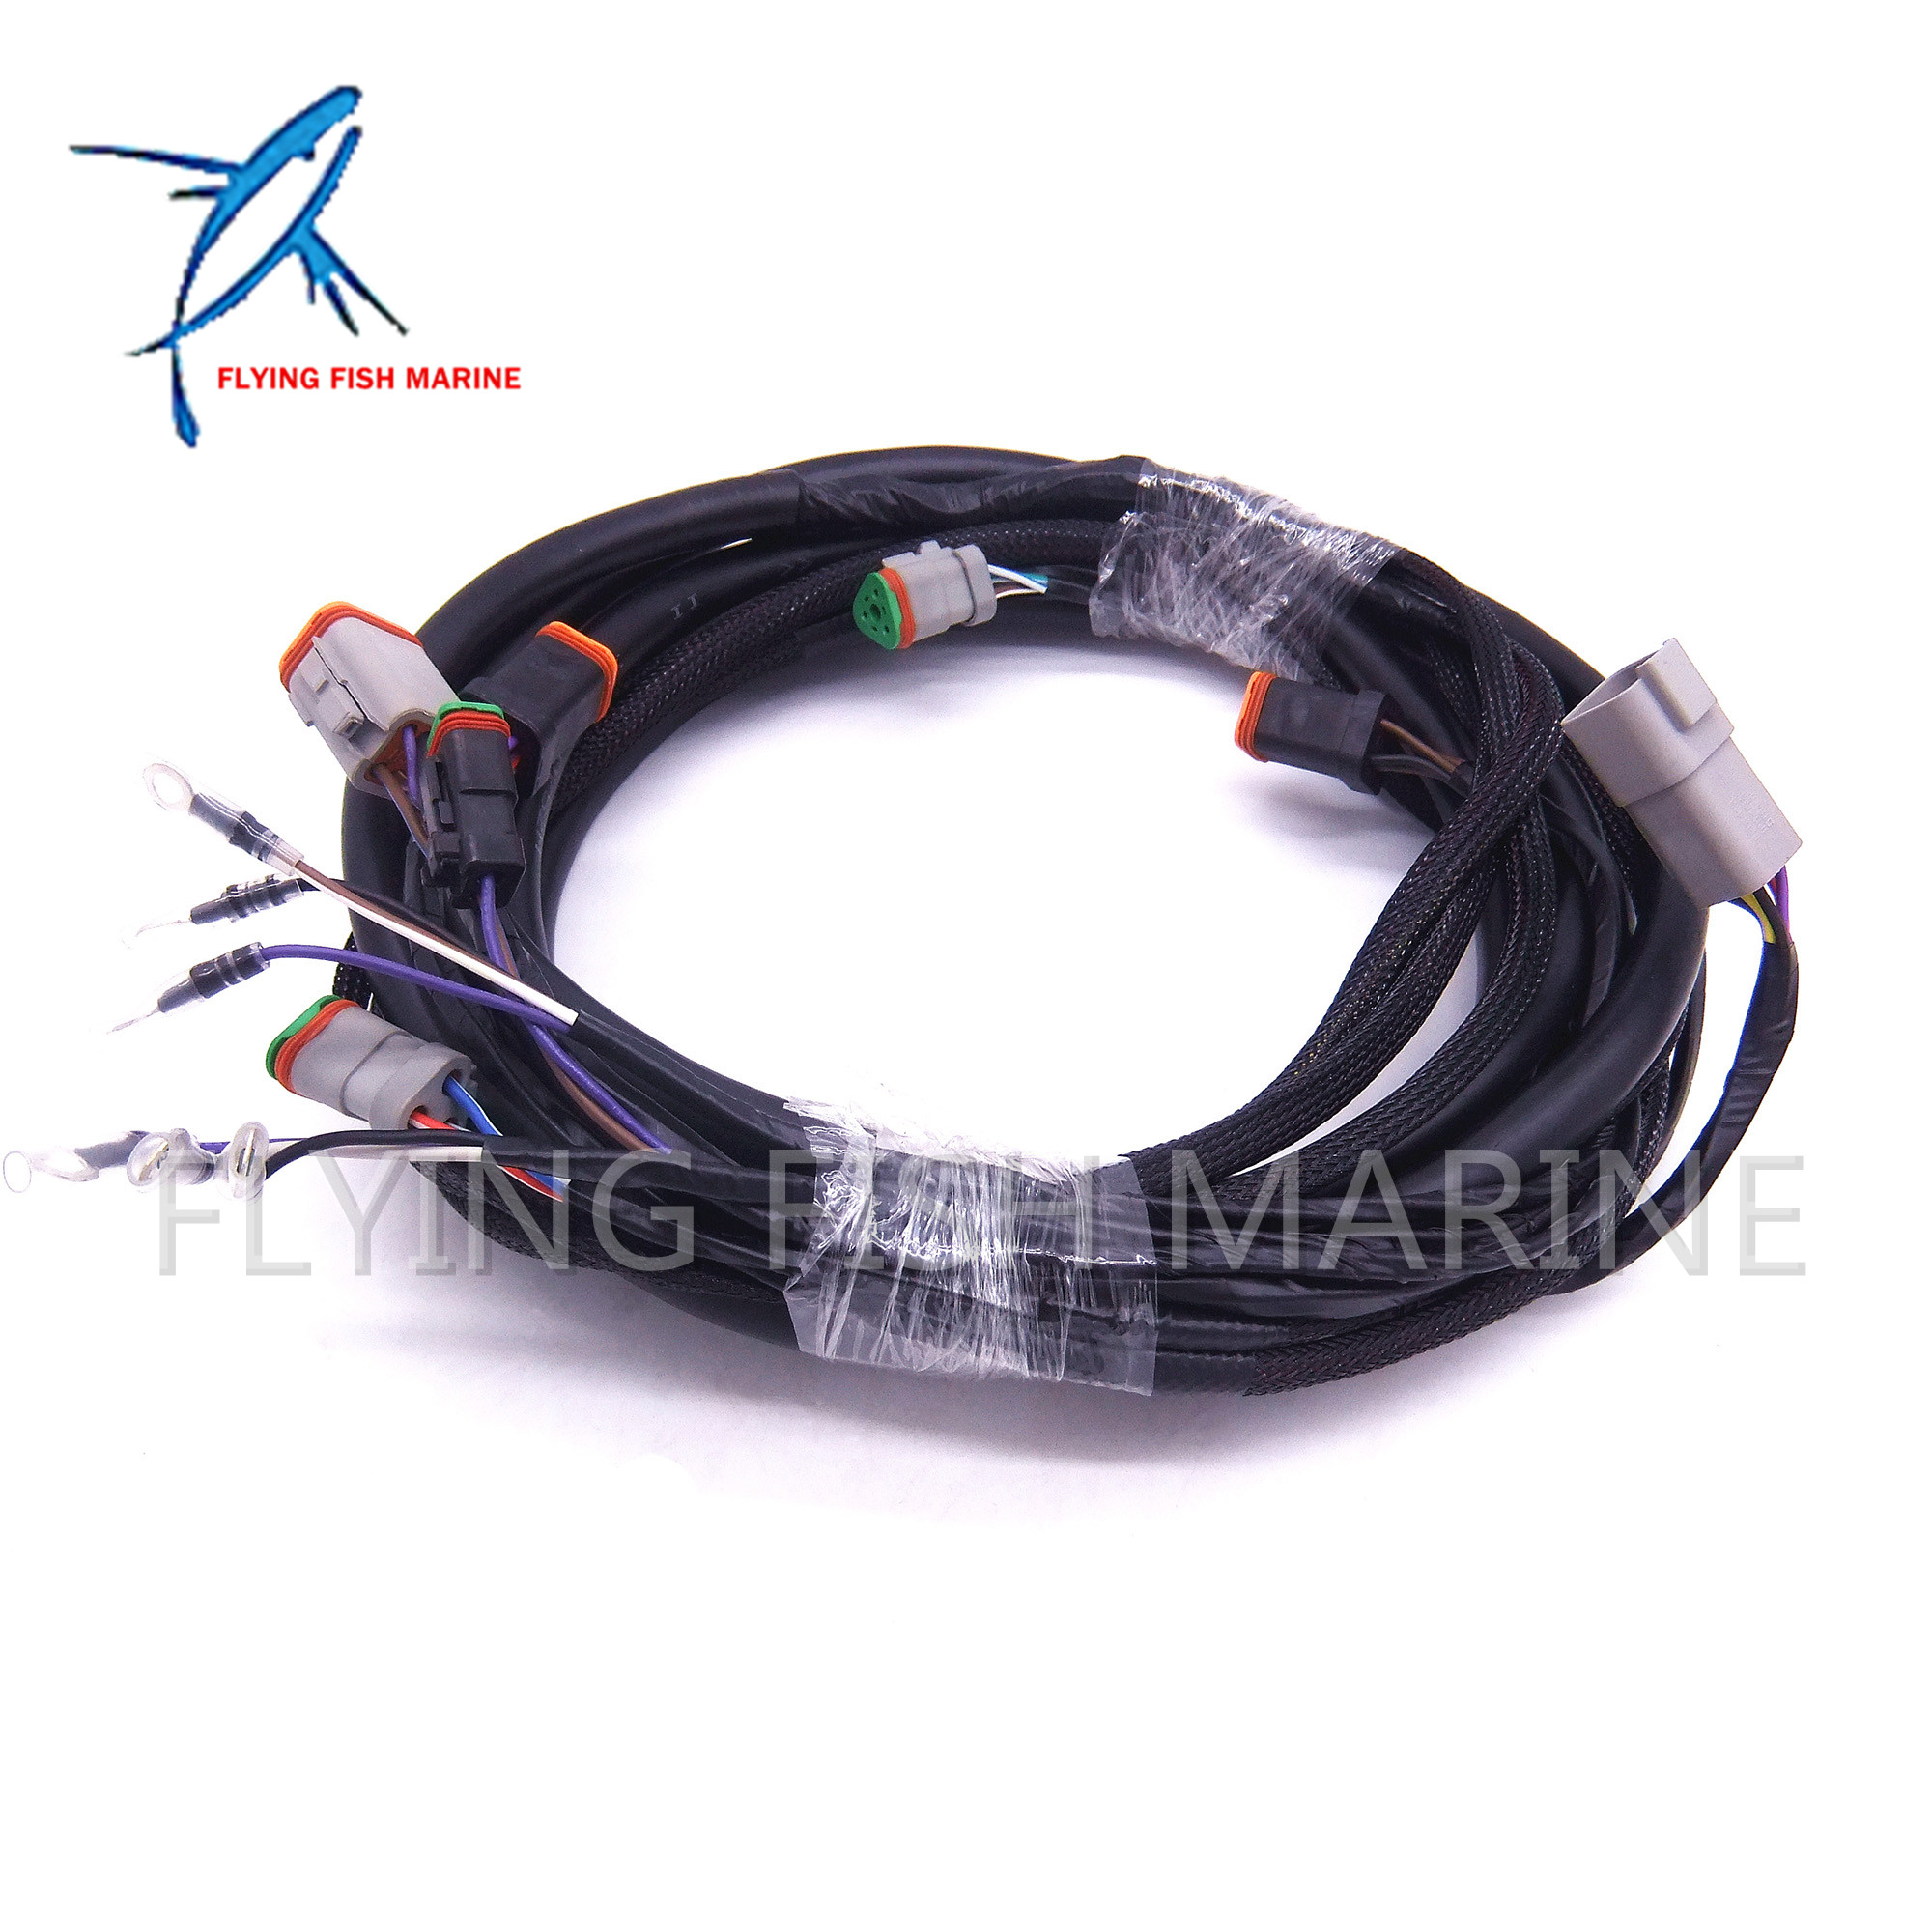 0176340 176340 new systemcheck 15ft main modular ignition wiring harness cable for evinrude johnson omc outboard [ 2000 x 2000 Pixel ]